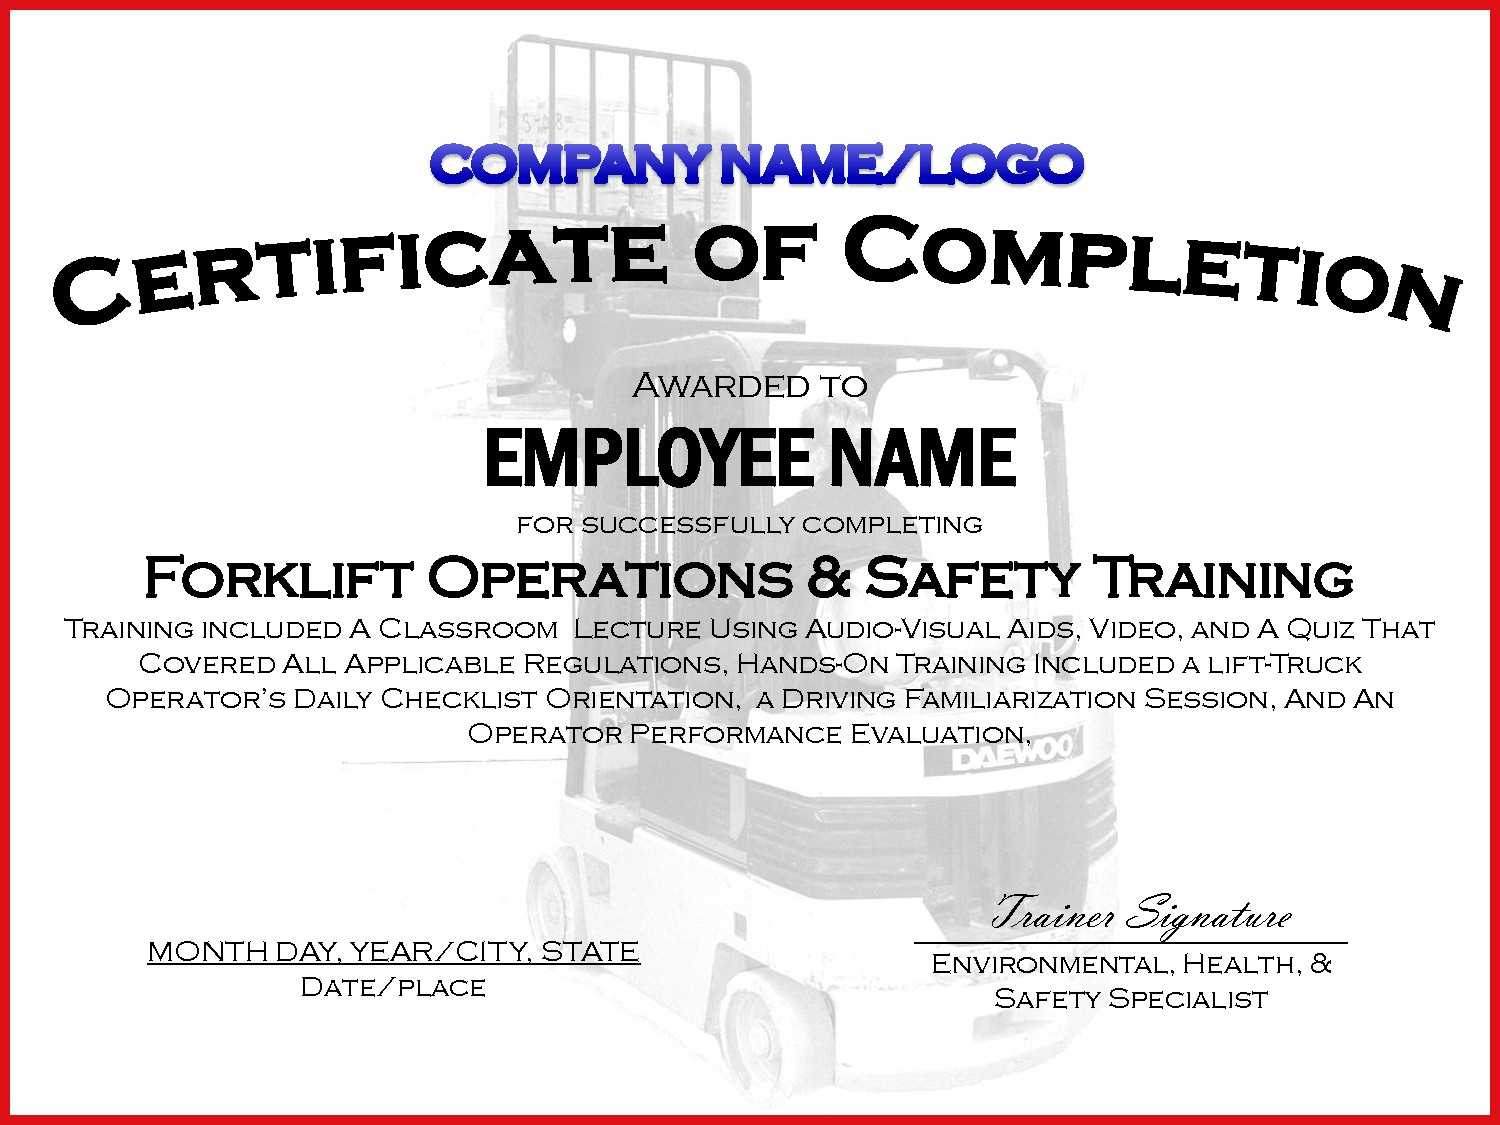 002 Forklift Truck Training Certificate Template Free Osha Regarding Forklift Certification Template